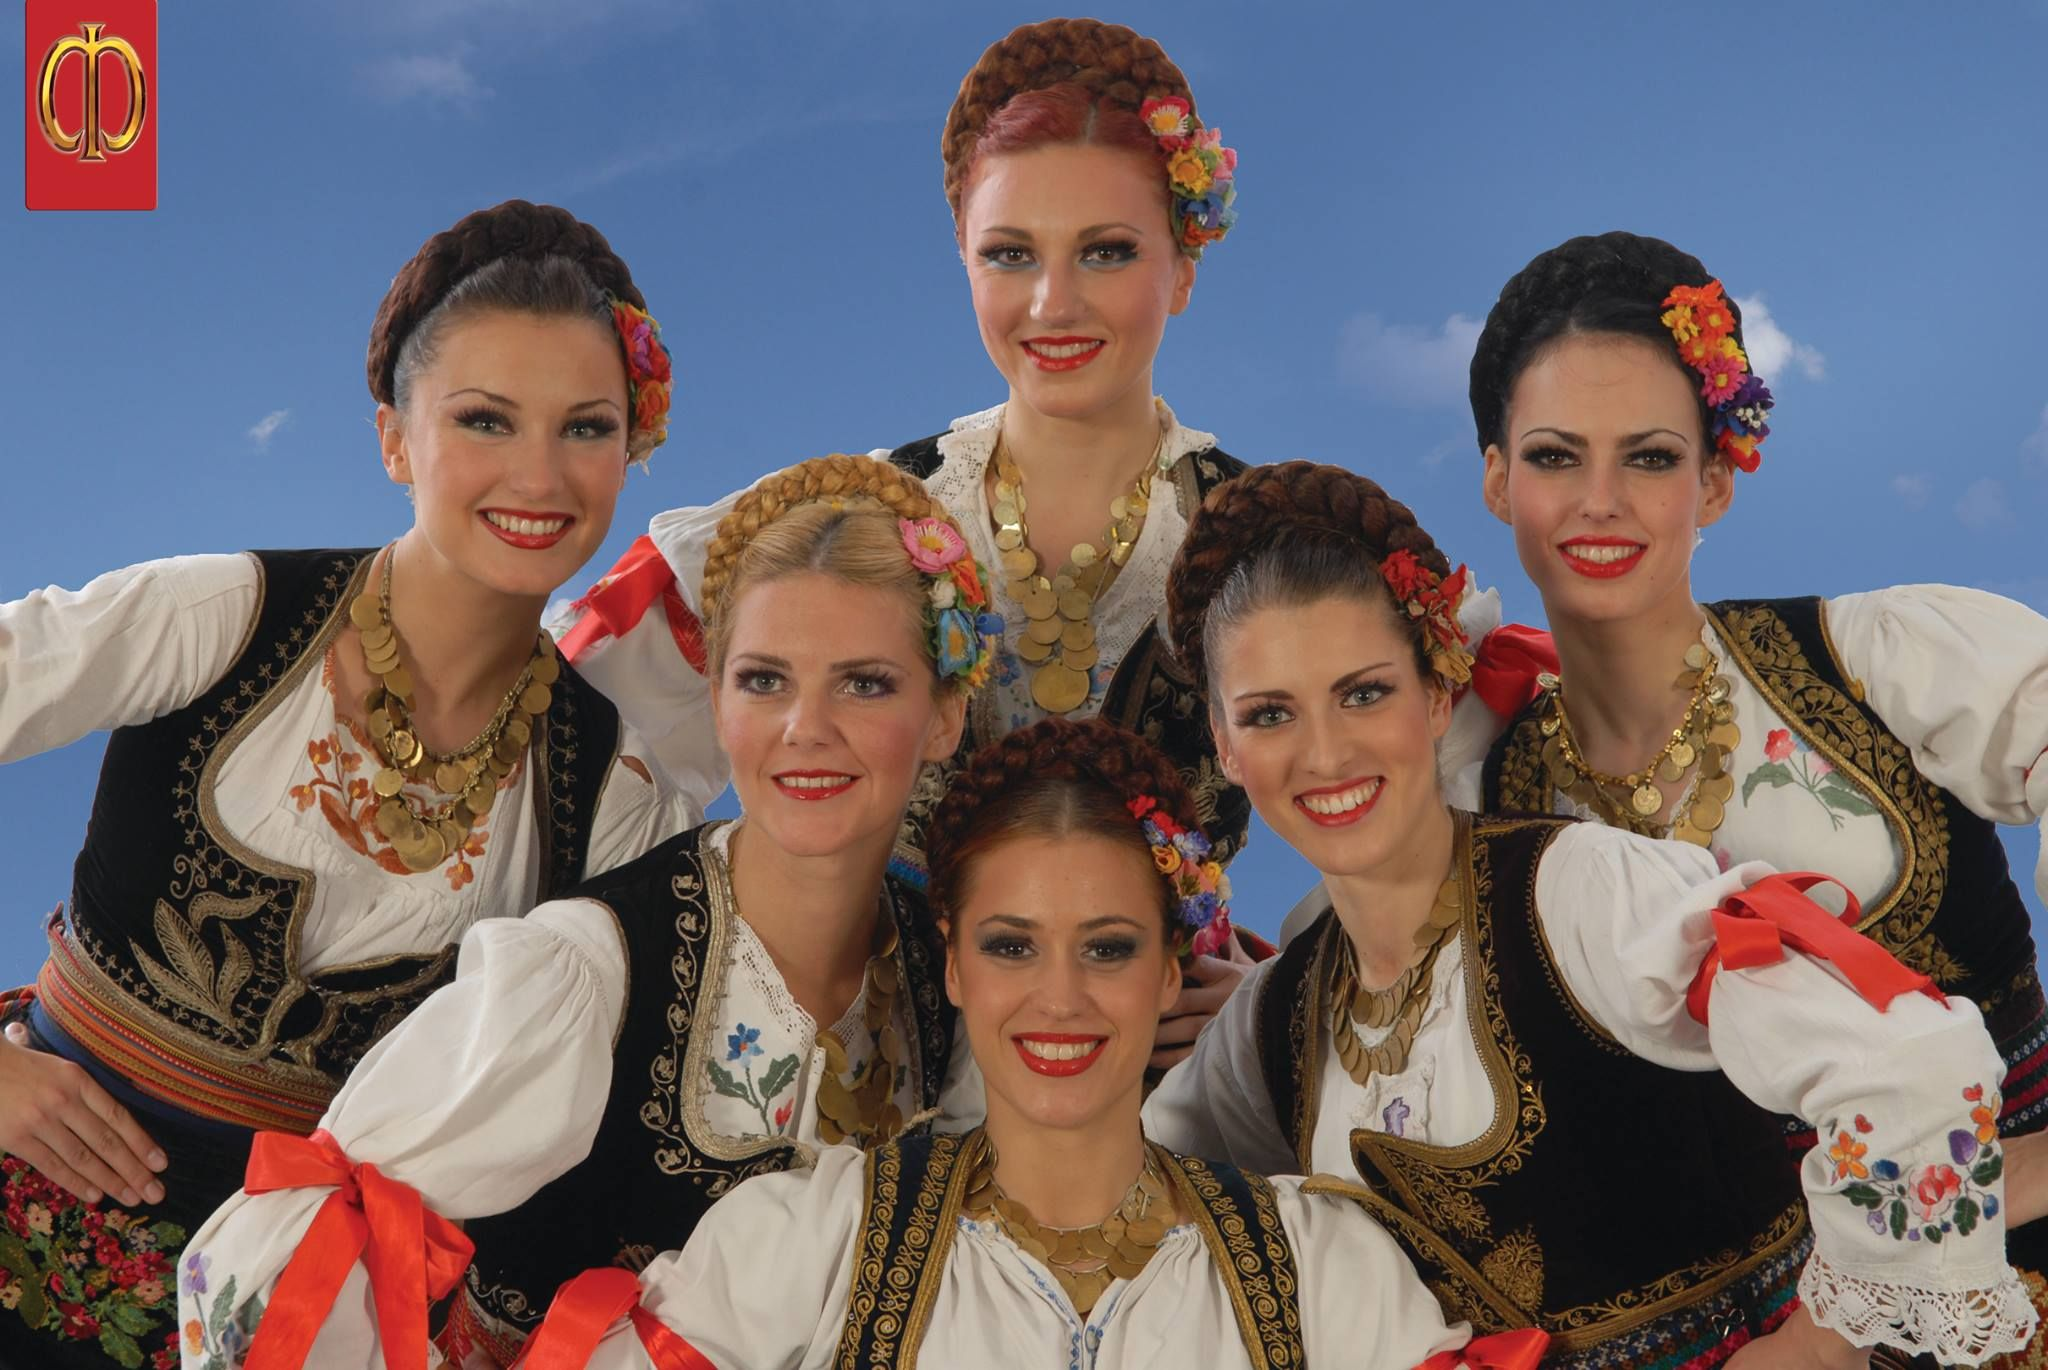 Serbian Women in Traditional Clothes from Šumadija